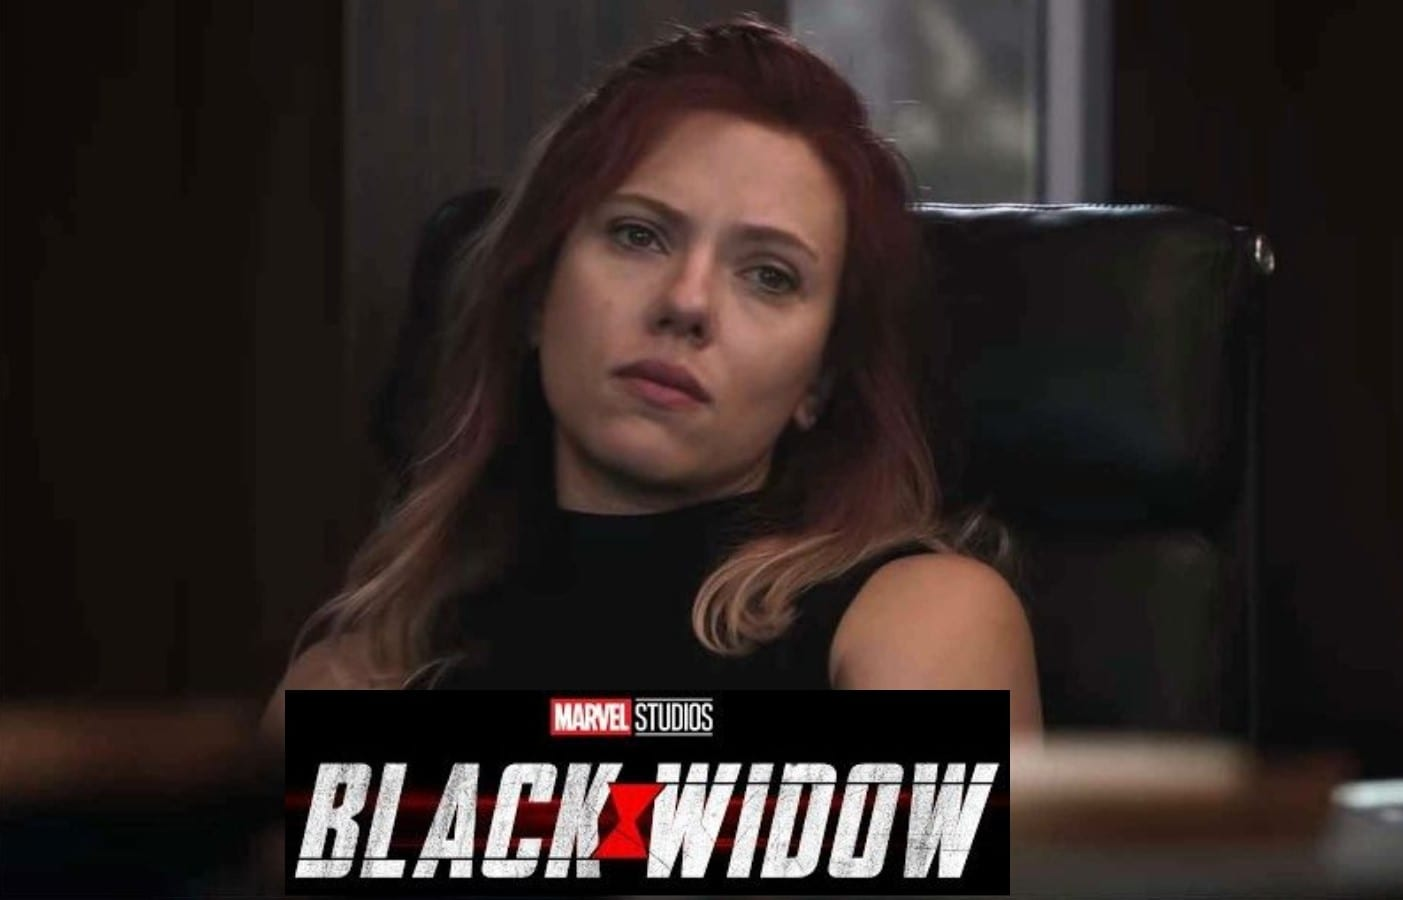 Report: Disney is considering delaying Black Widow again